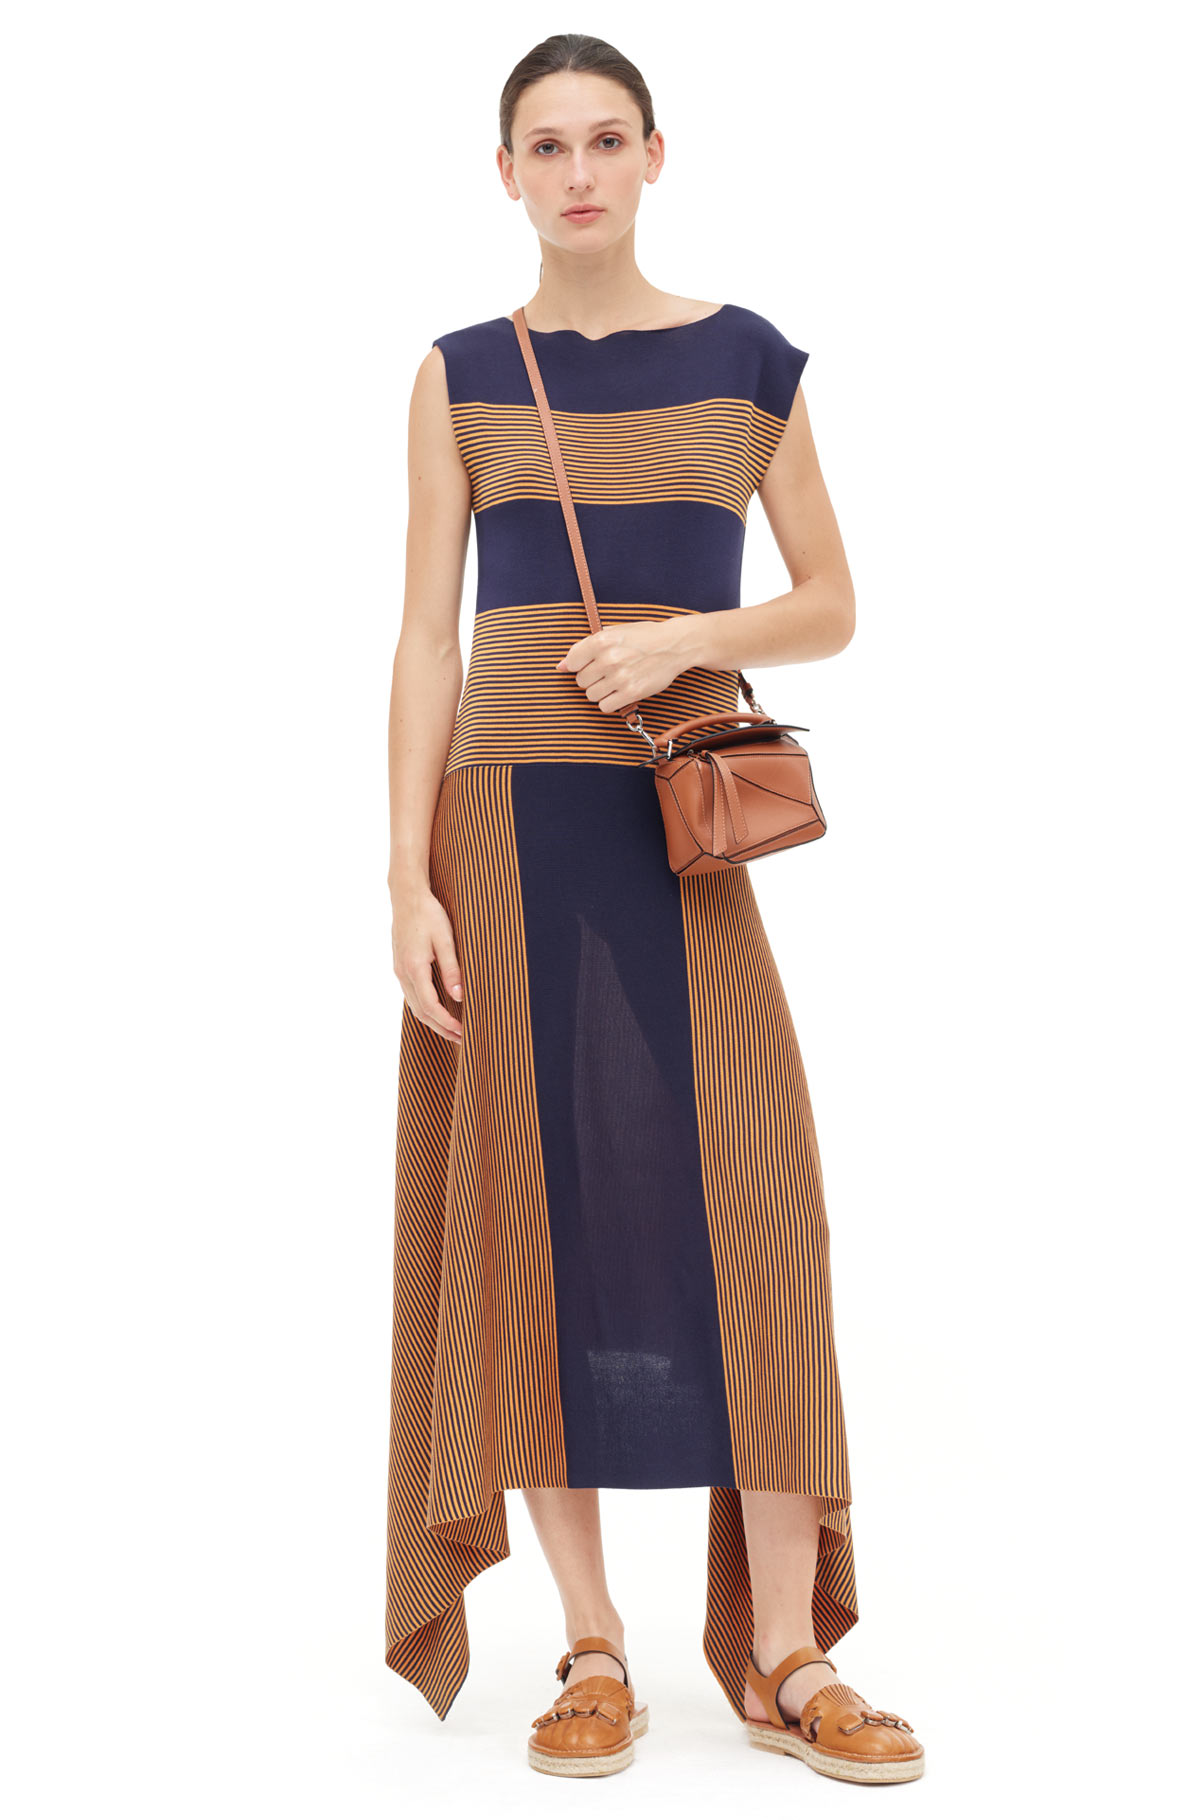 LOEWE Stripe Knit Dress Navy/Orange front